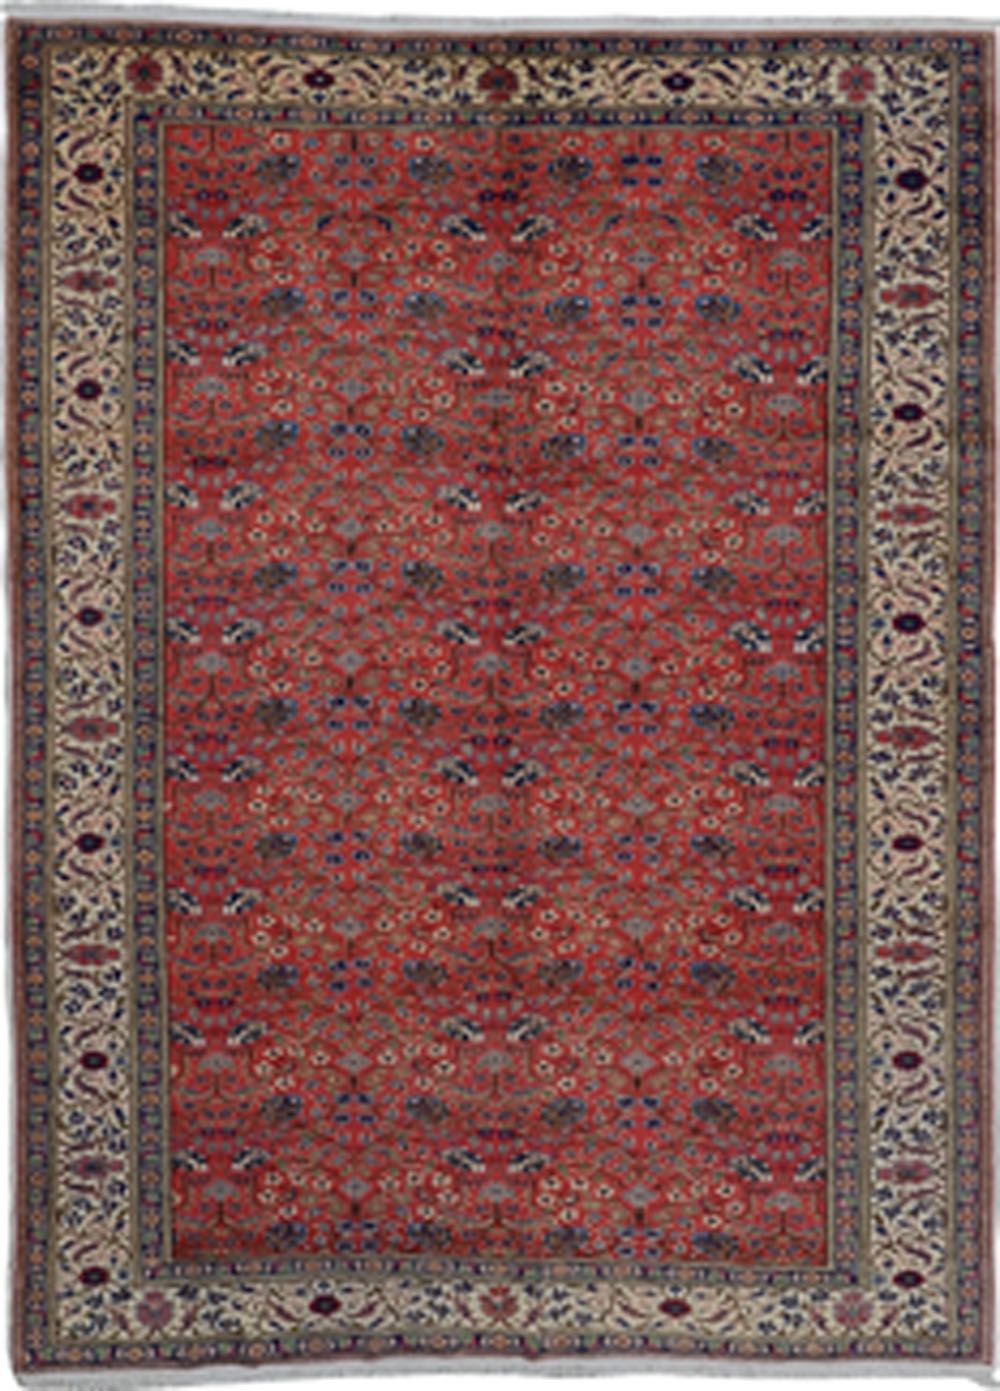 Togar Rugs - High End Knotted #Collections August 2012 # ...